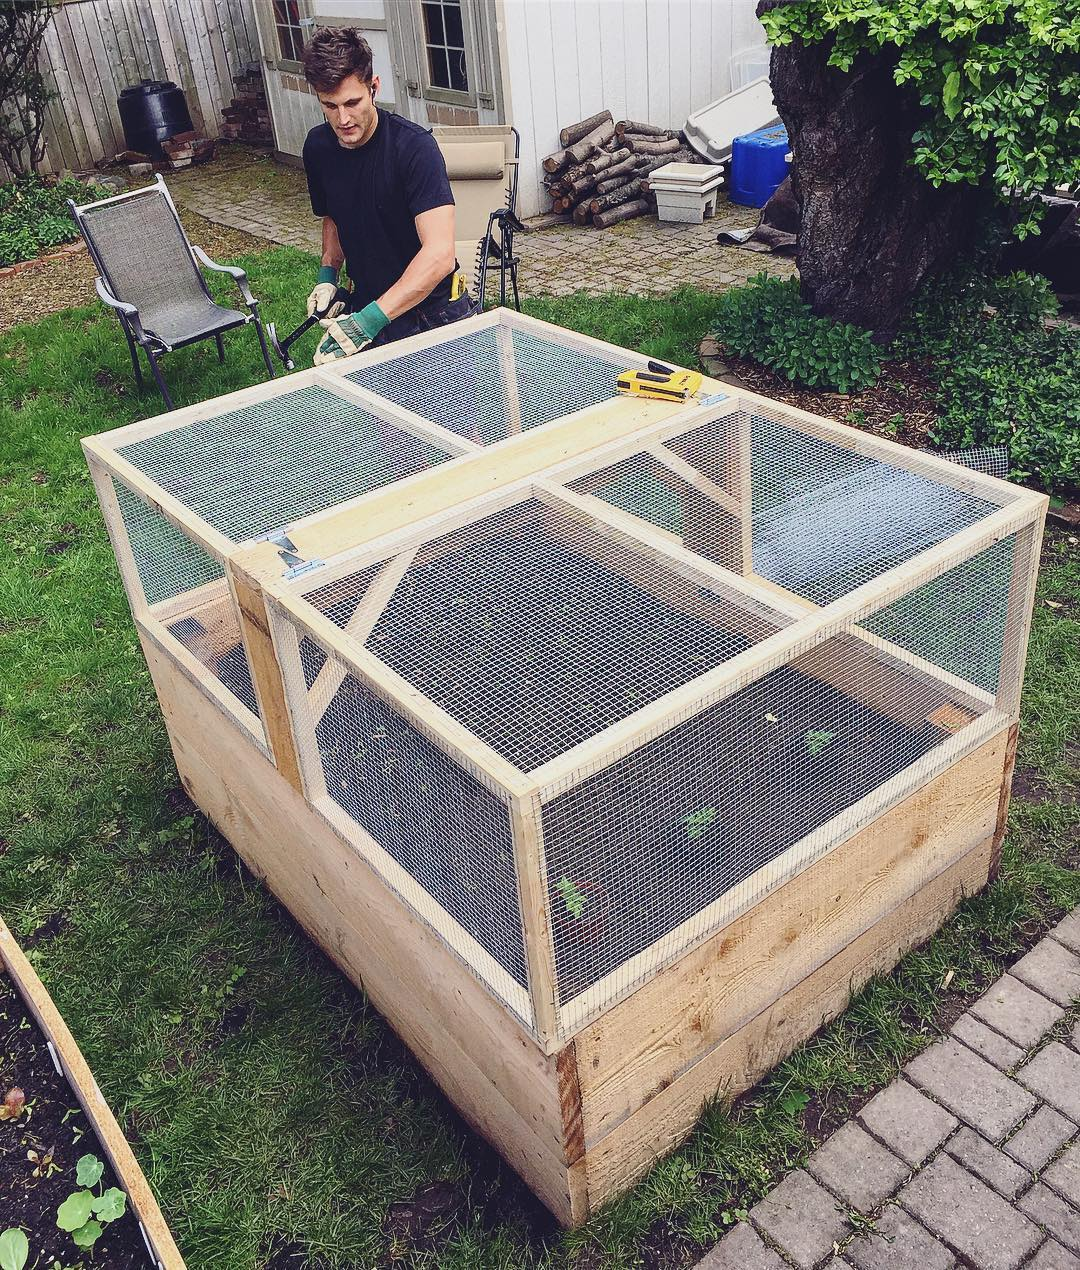 IG: Our Enclosed Raised Bed Is Looking KICKASS! Now Just